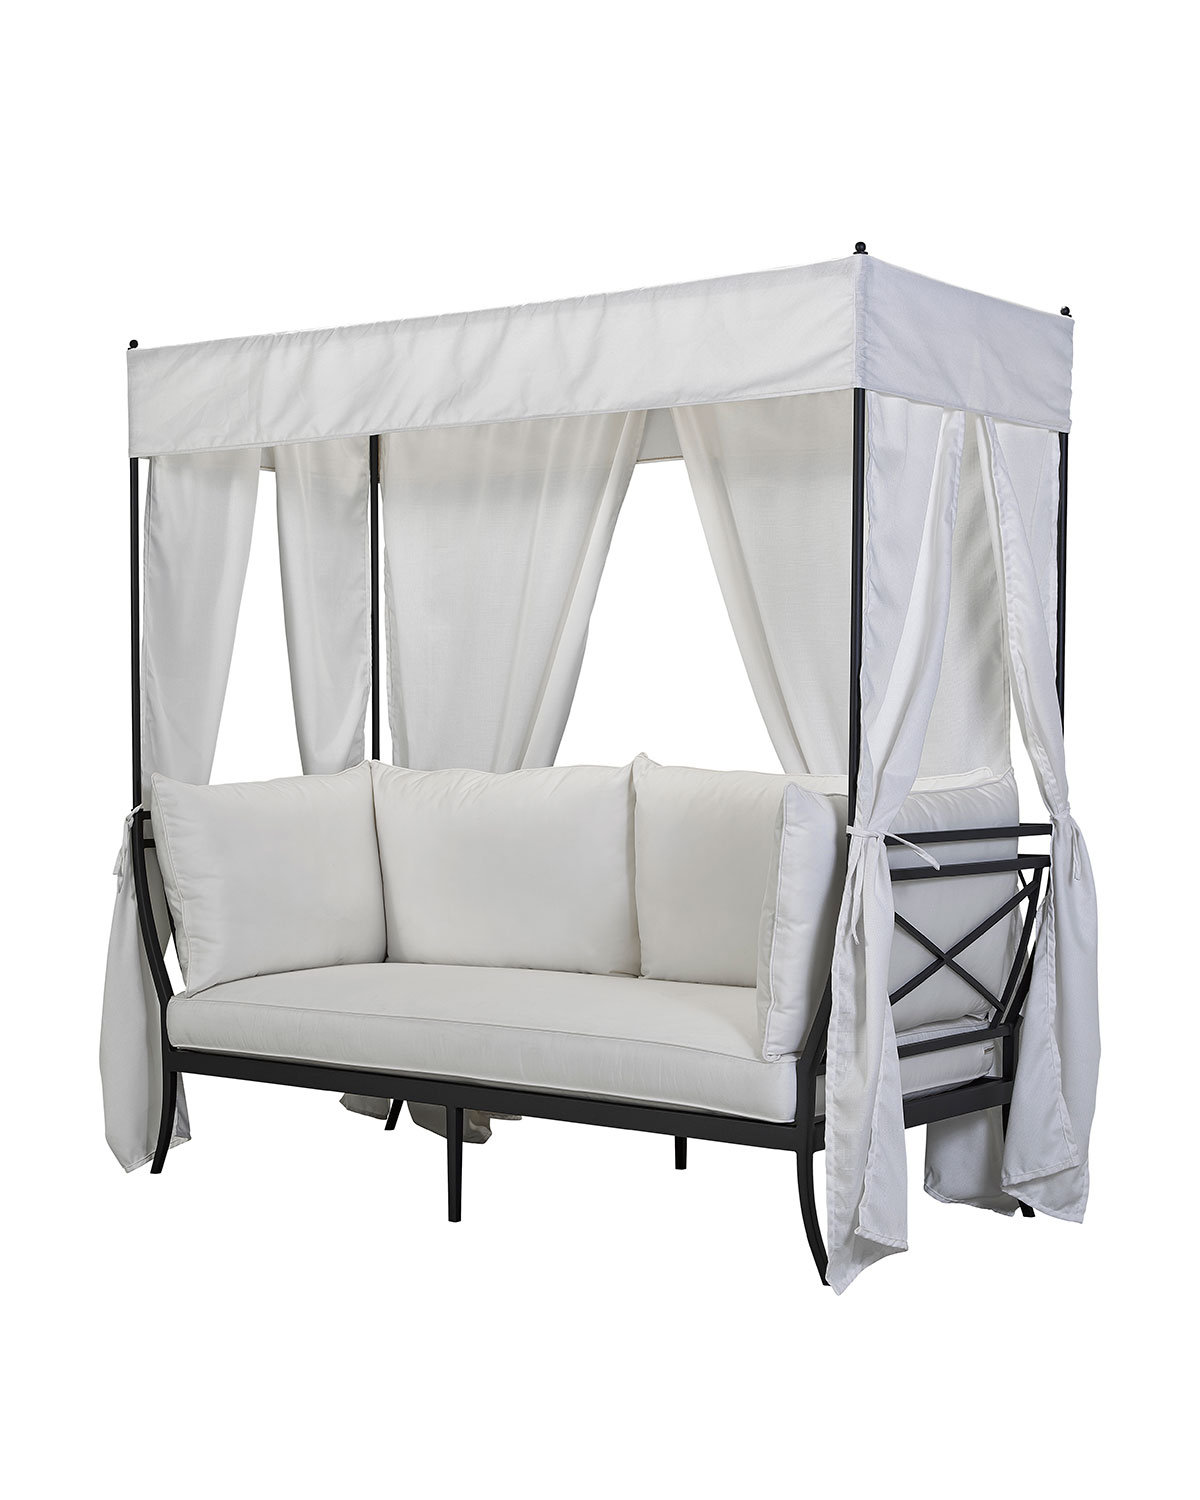 Trendy Bamboo Daybeds With Canopy For Winterthur Day Bed Canopy (View 17 of 25)